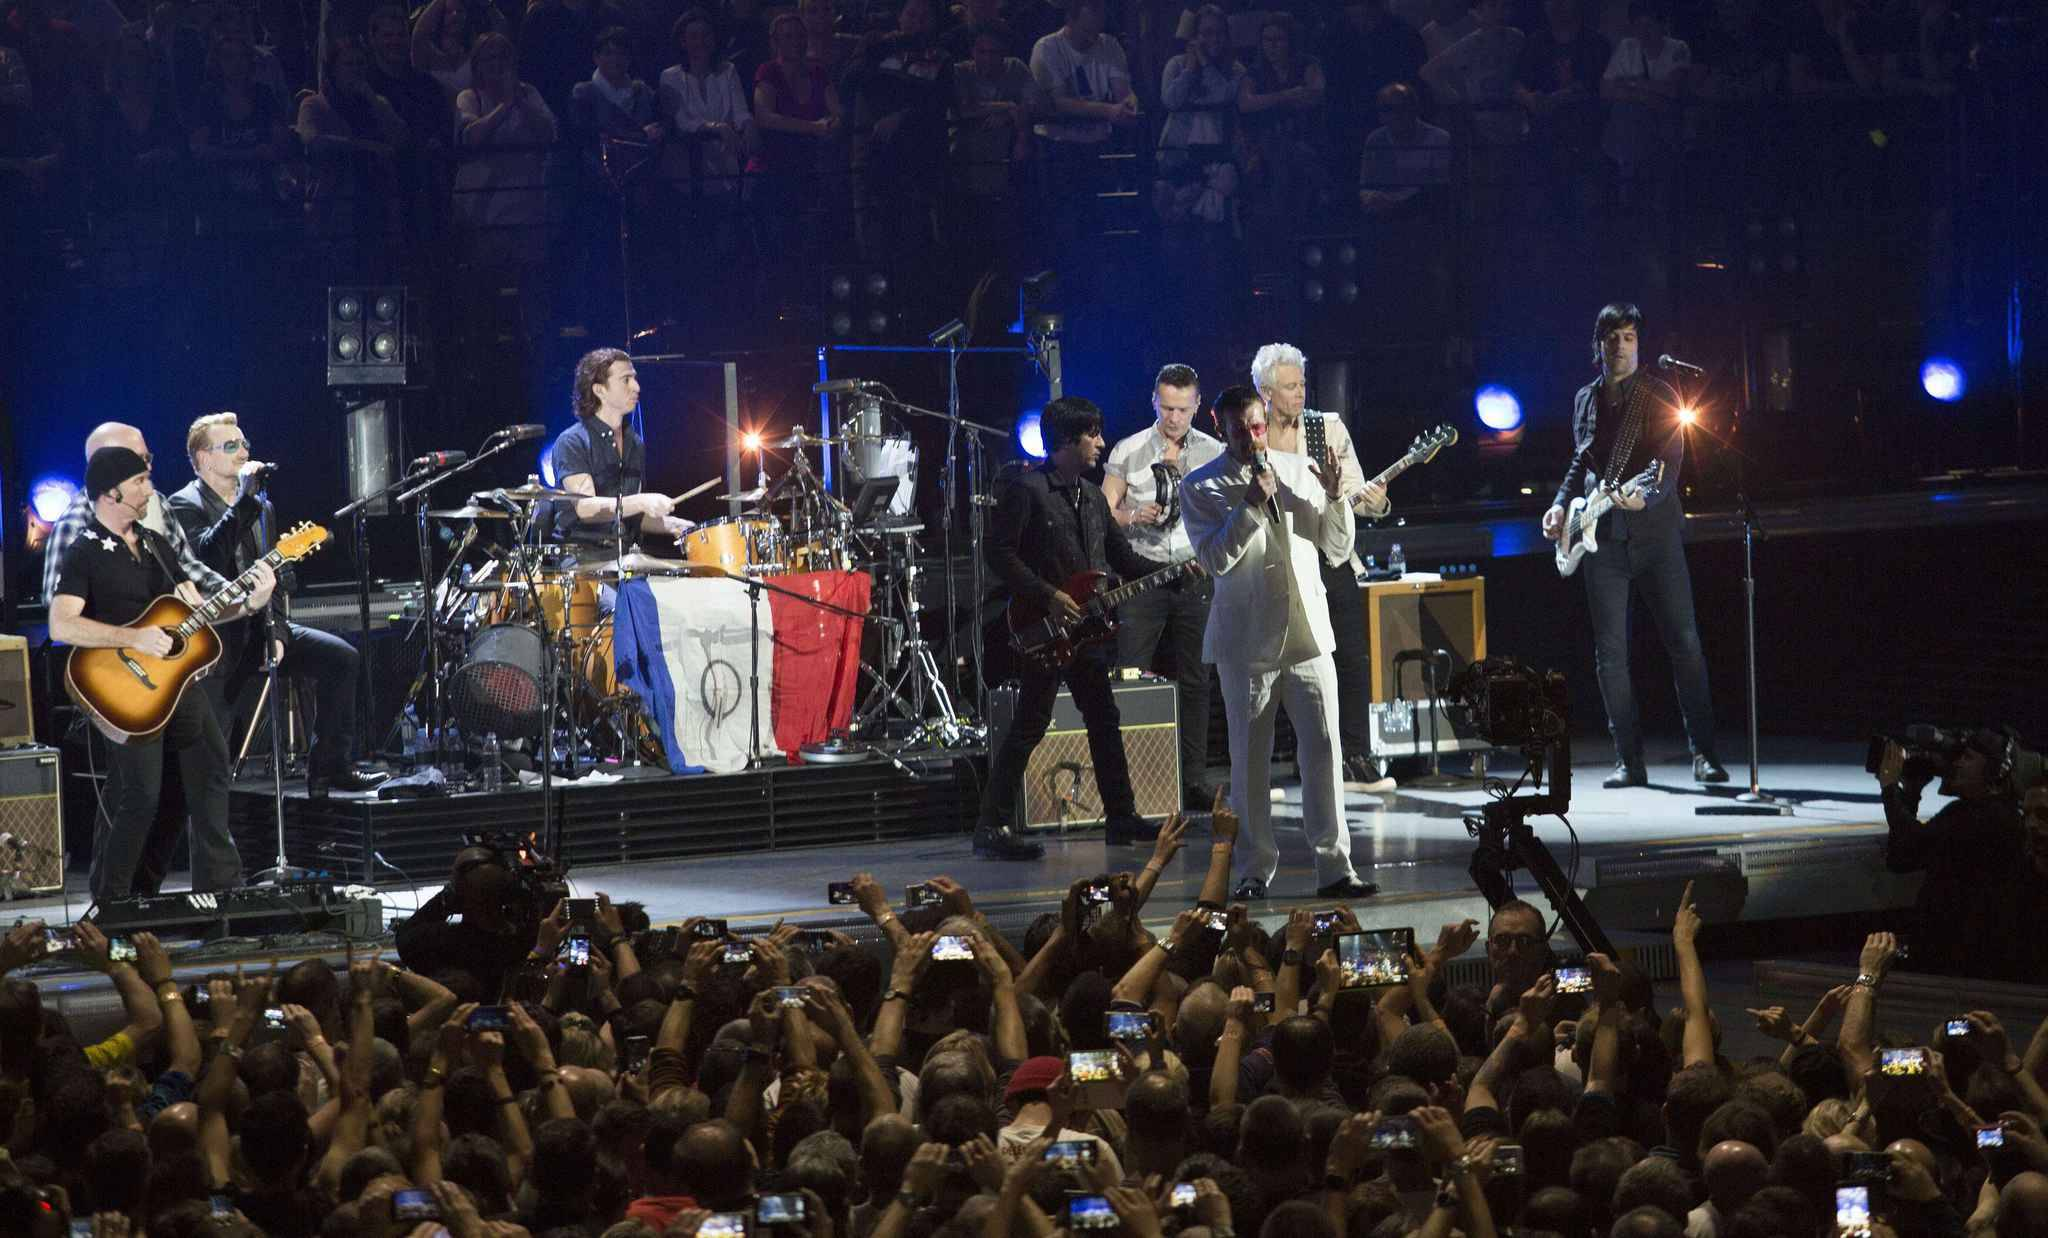 Attentats: les Eagles of Death Metal en concert à Paris en février